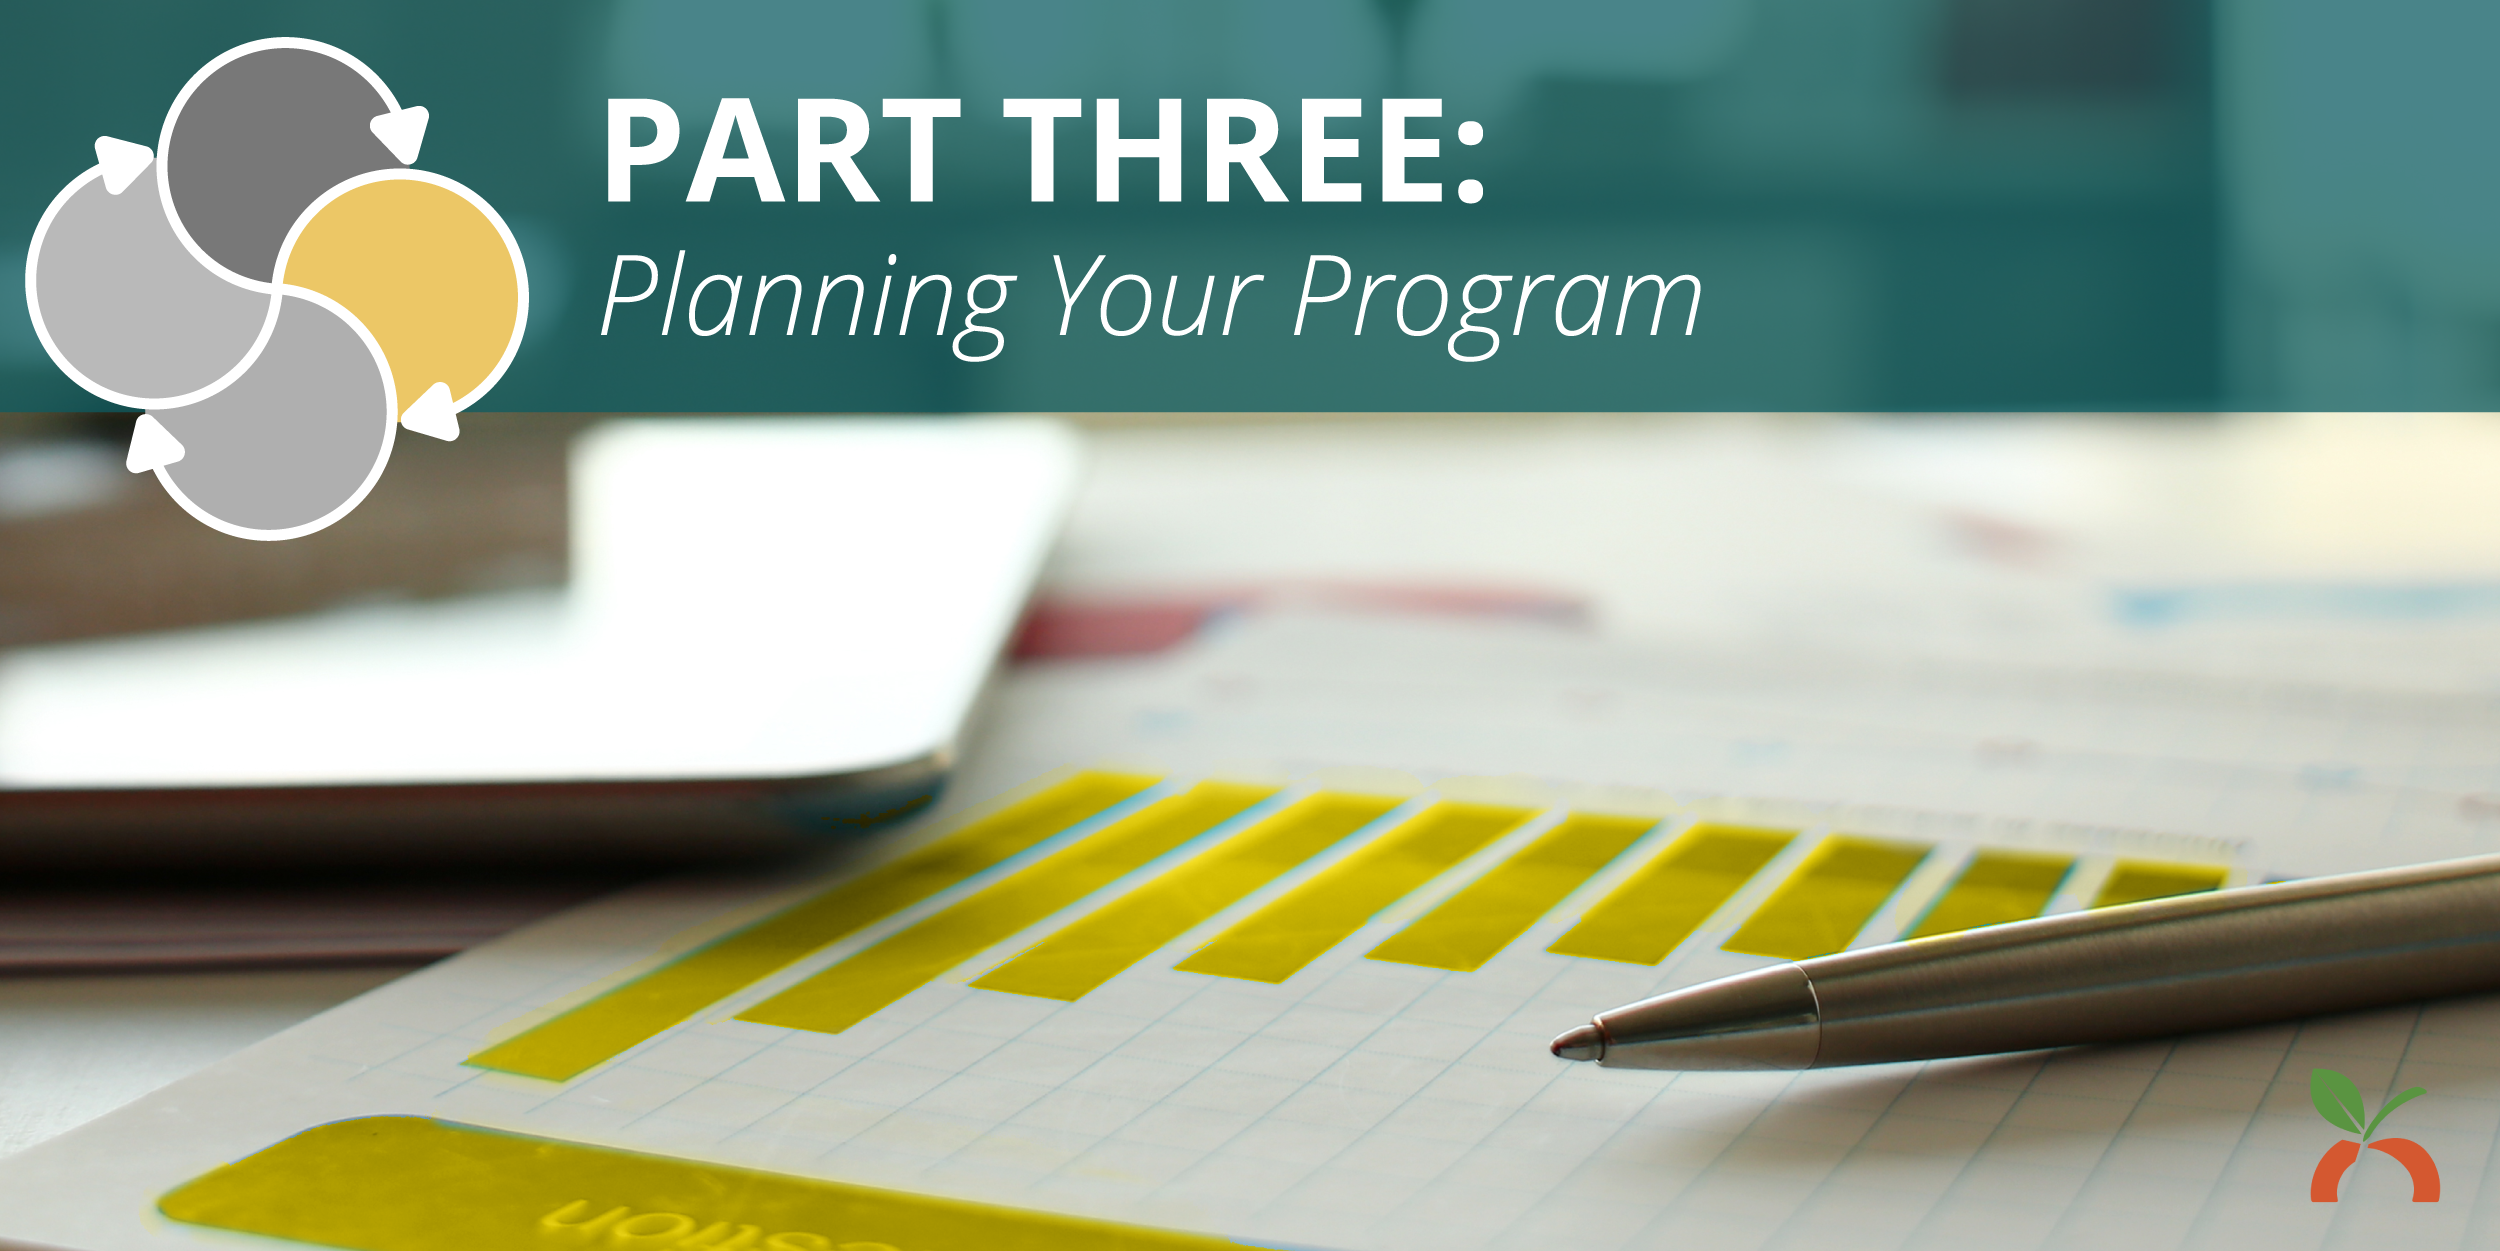 Using an HRA to Develop a Health Intervention Plan Part Three: Planning Your Program